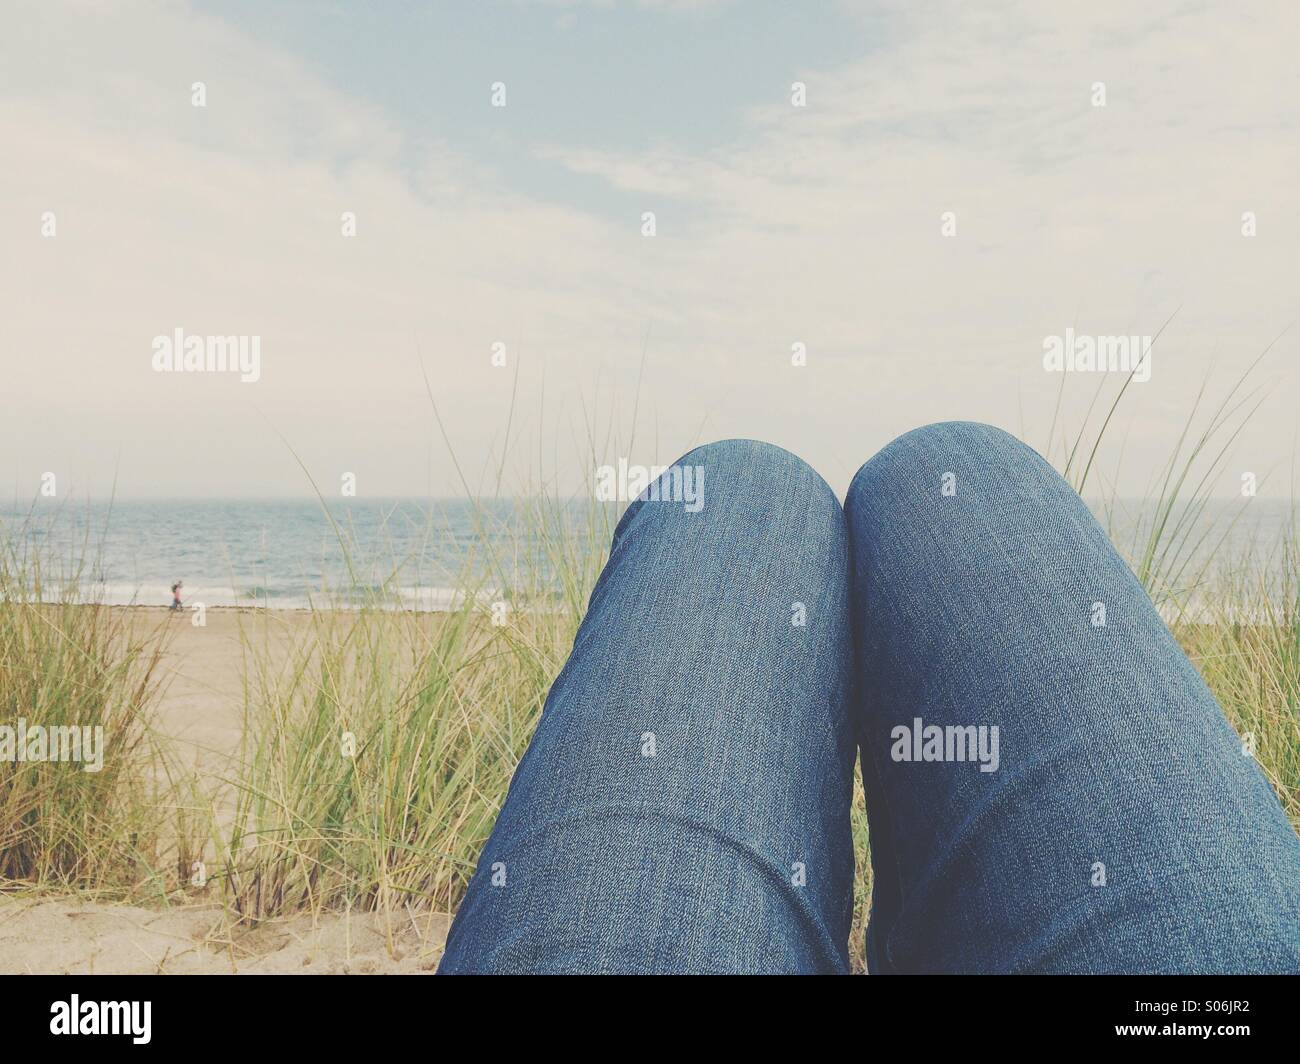 Relaxing in the sand dunes - Stock Image